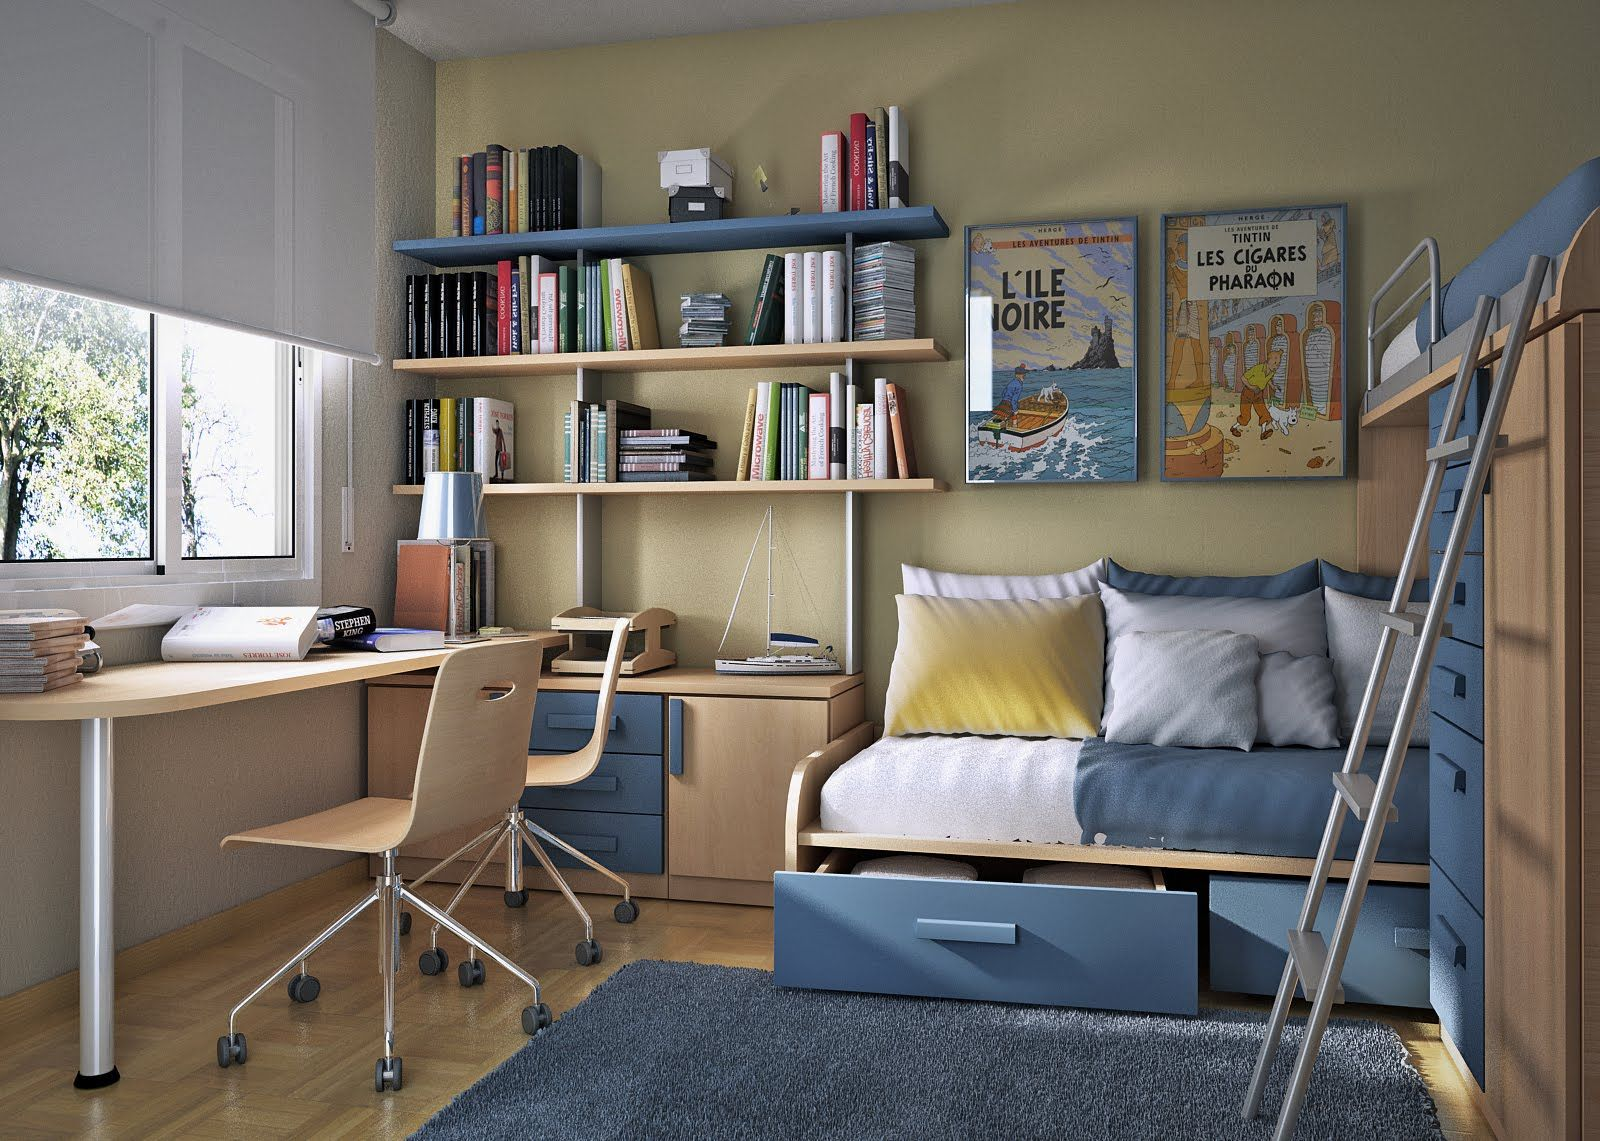 15 interior design tips & ideas for narrow small spaces | kids